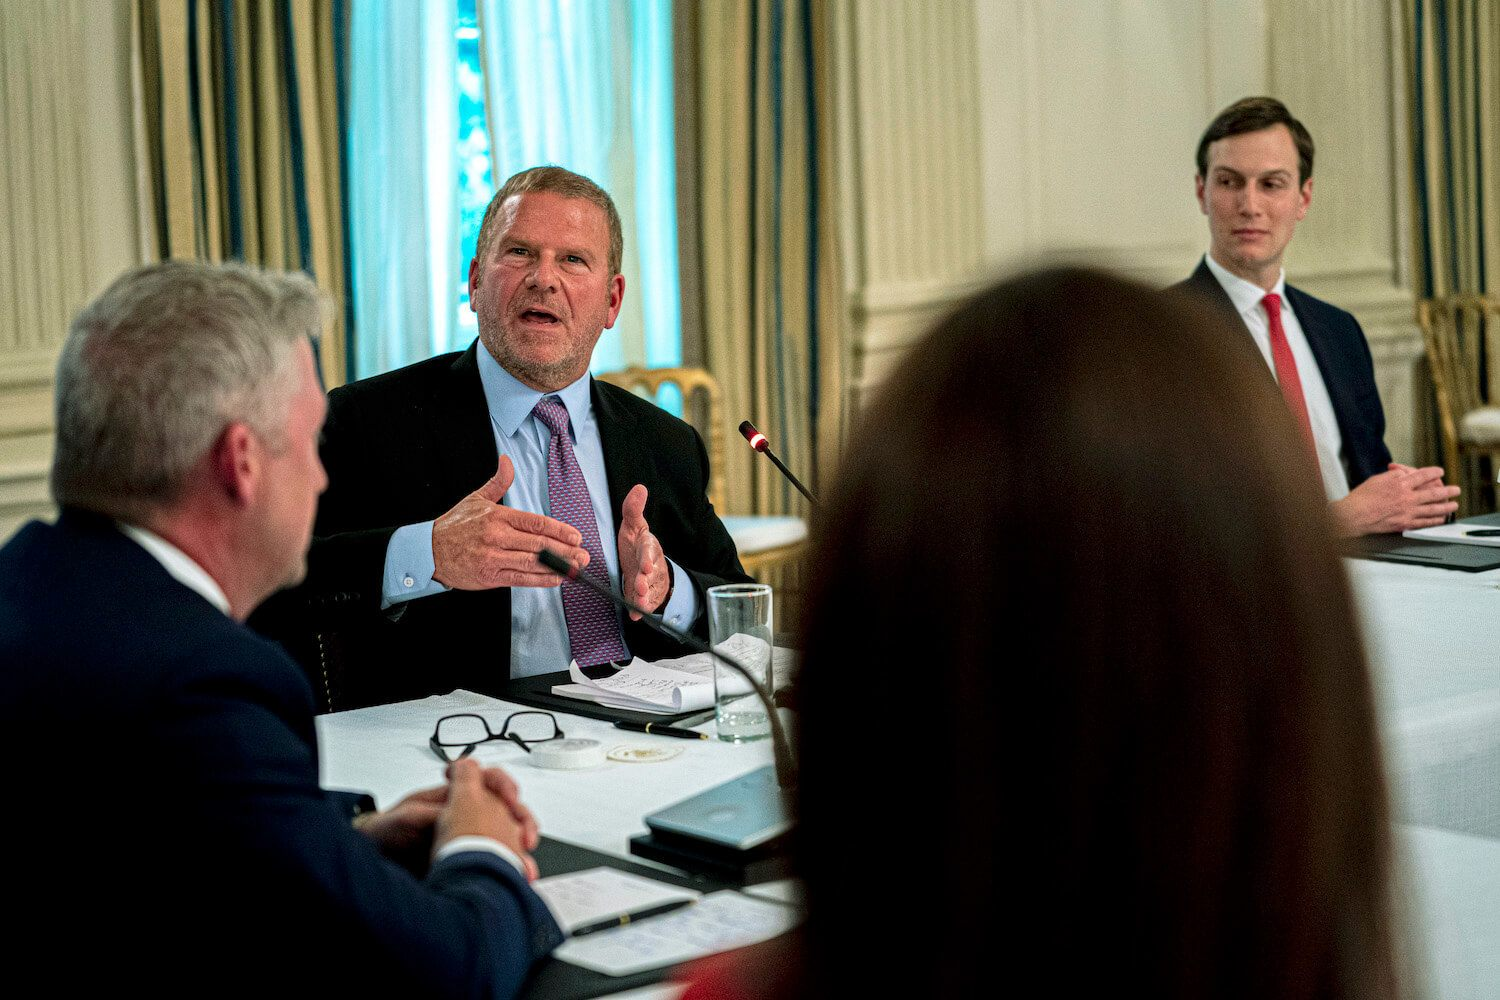 Tilman Fertitta, CEO of Landry's Hospitality, makes remarks during a roundtable with Restaurant Executives and Industry Leaders at the White House on May 18, 2020. Landry has given more than half a million dollars to Texas Governor Greg Abbott. May 2021